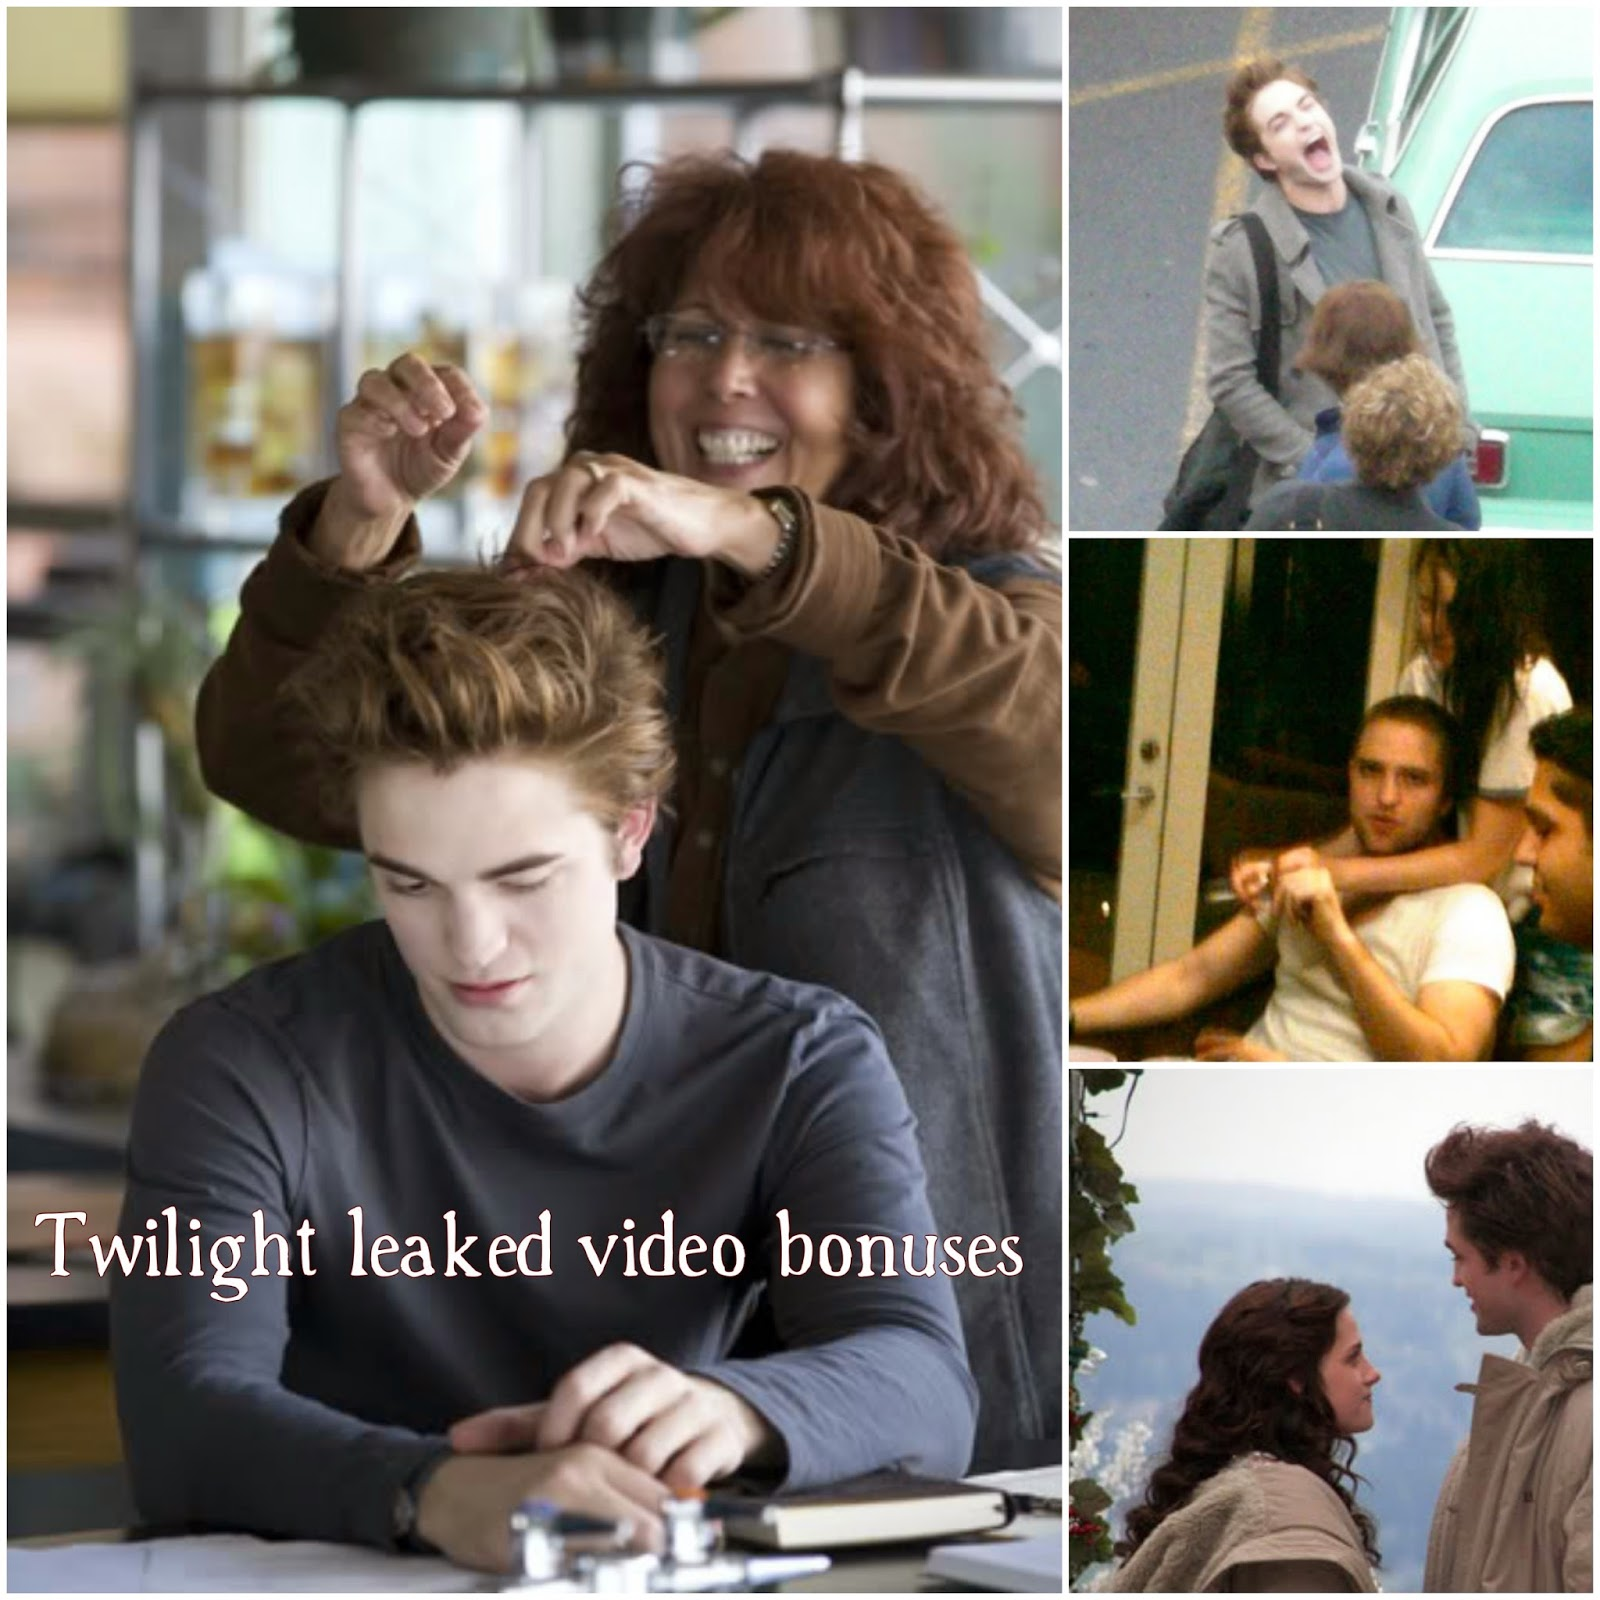 Twilight-leaked-video-bonuses